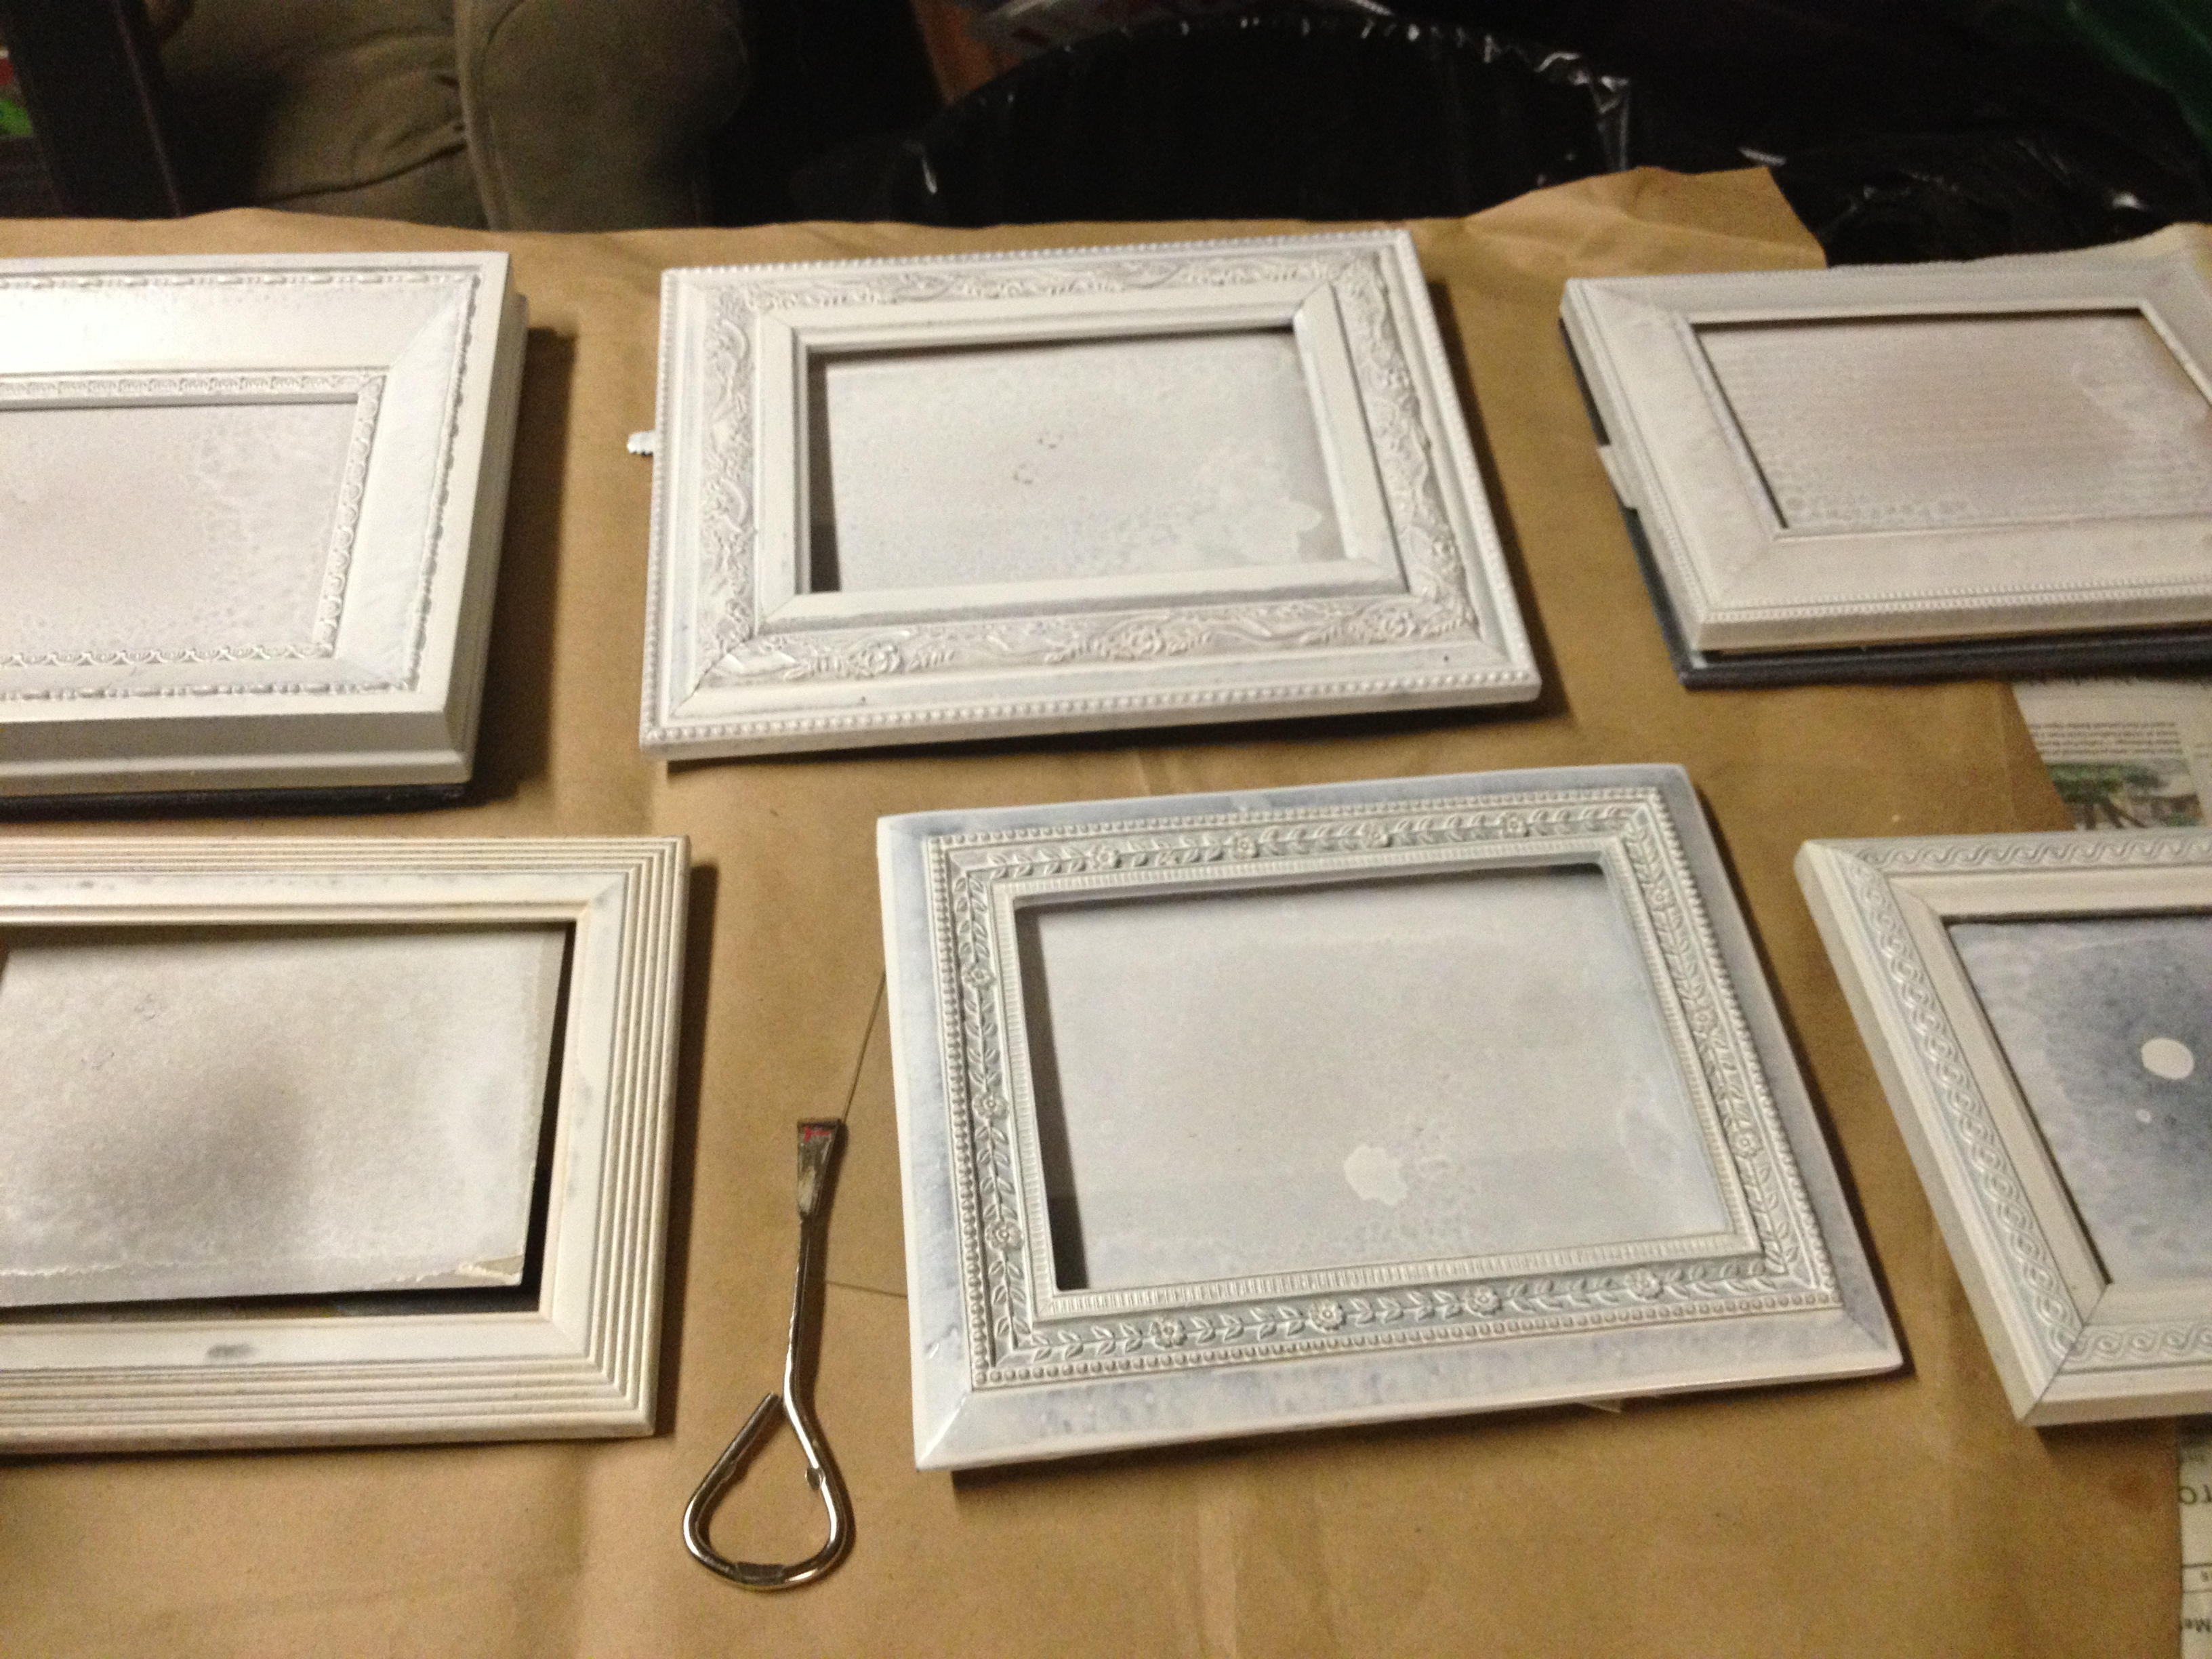 so i went for annie sloan chalk paint in old white for all the frames this paint covers anything i may have been able to make the spray paint work by